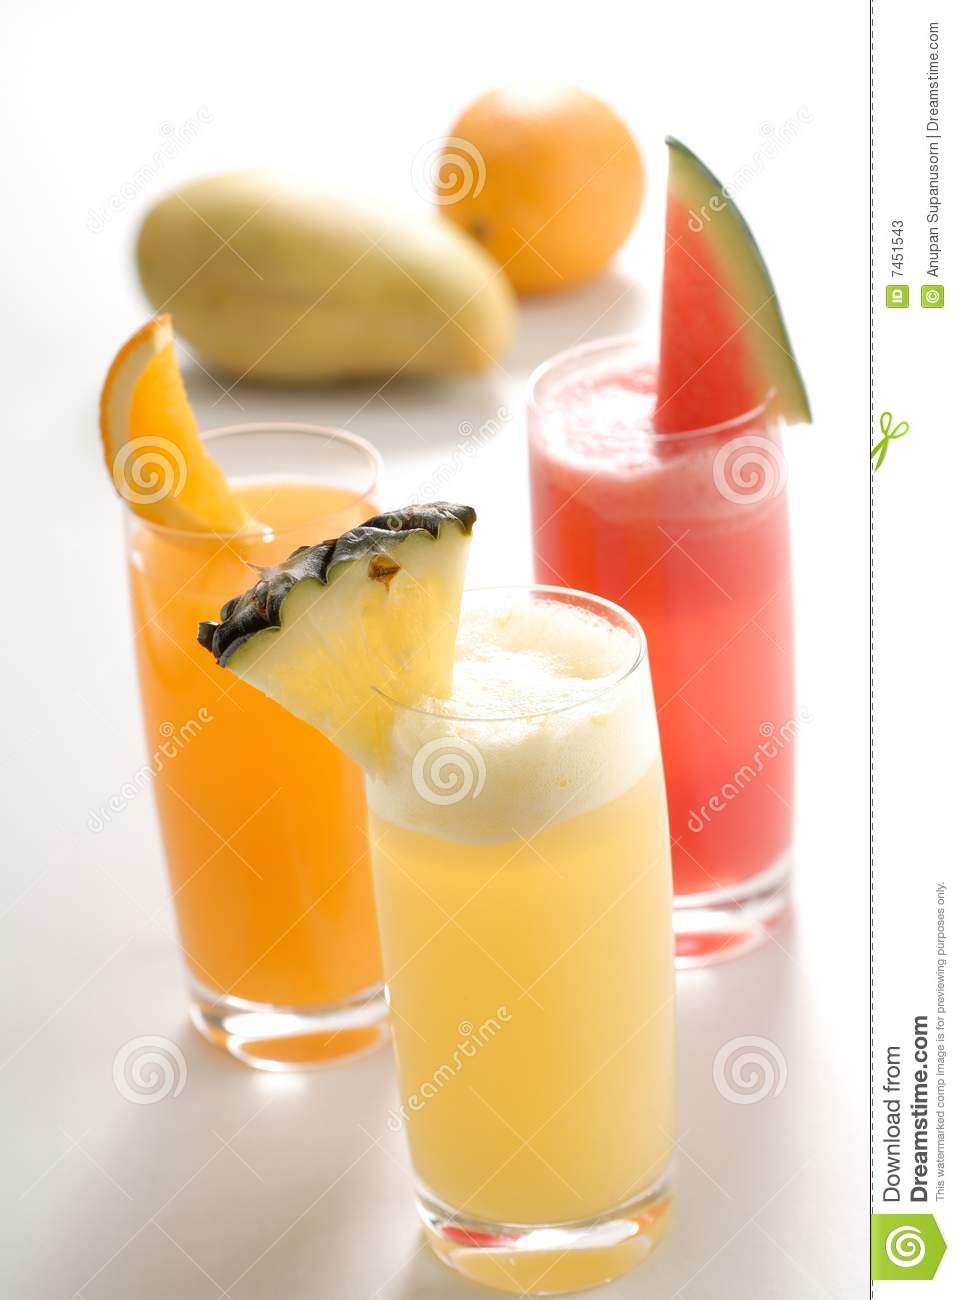 Jus de fruit tropical